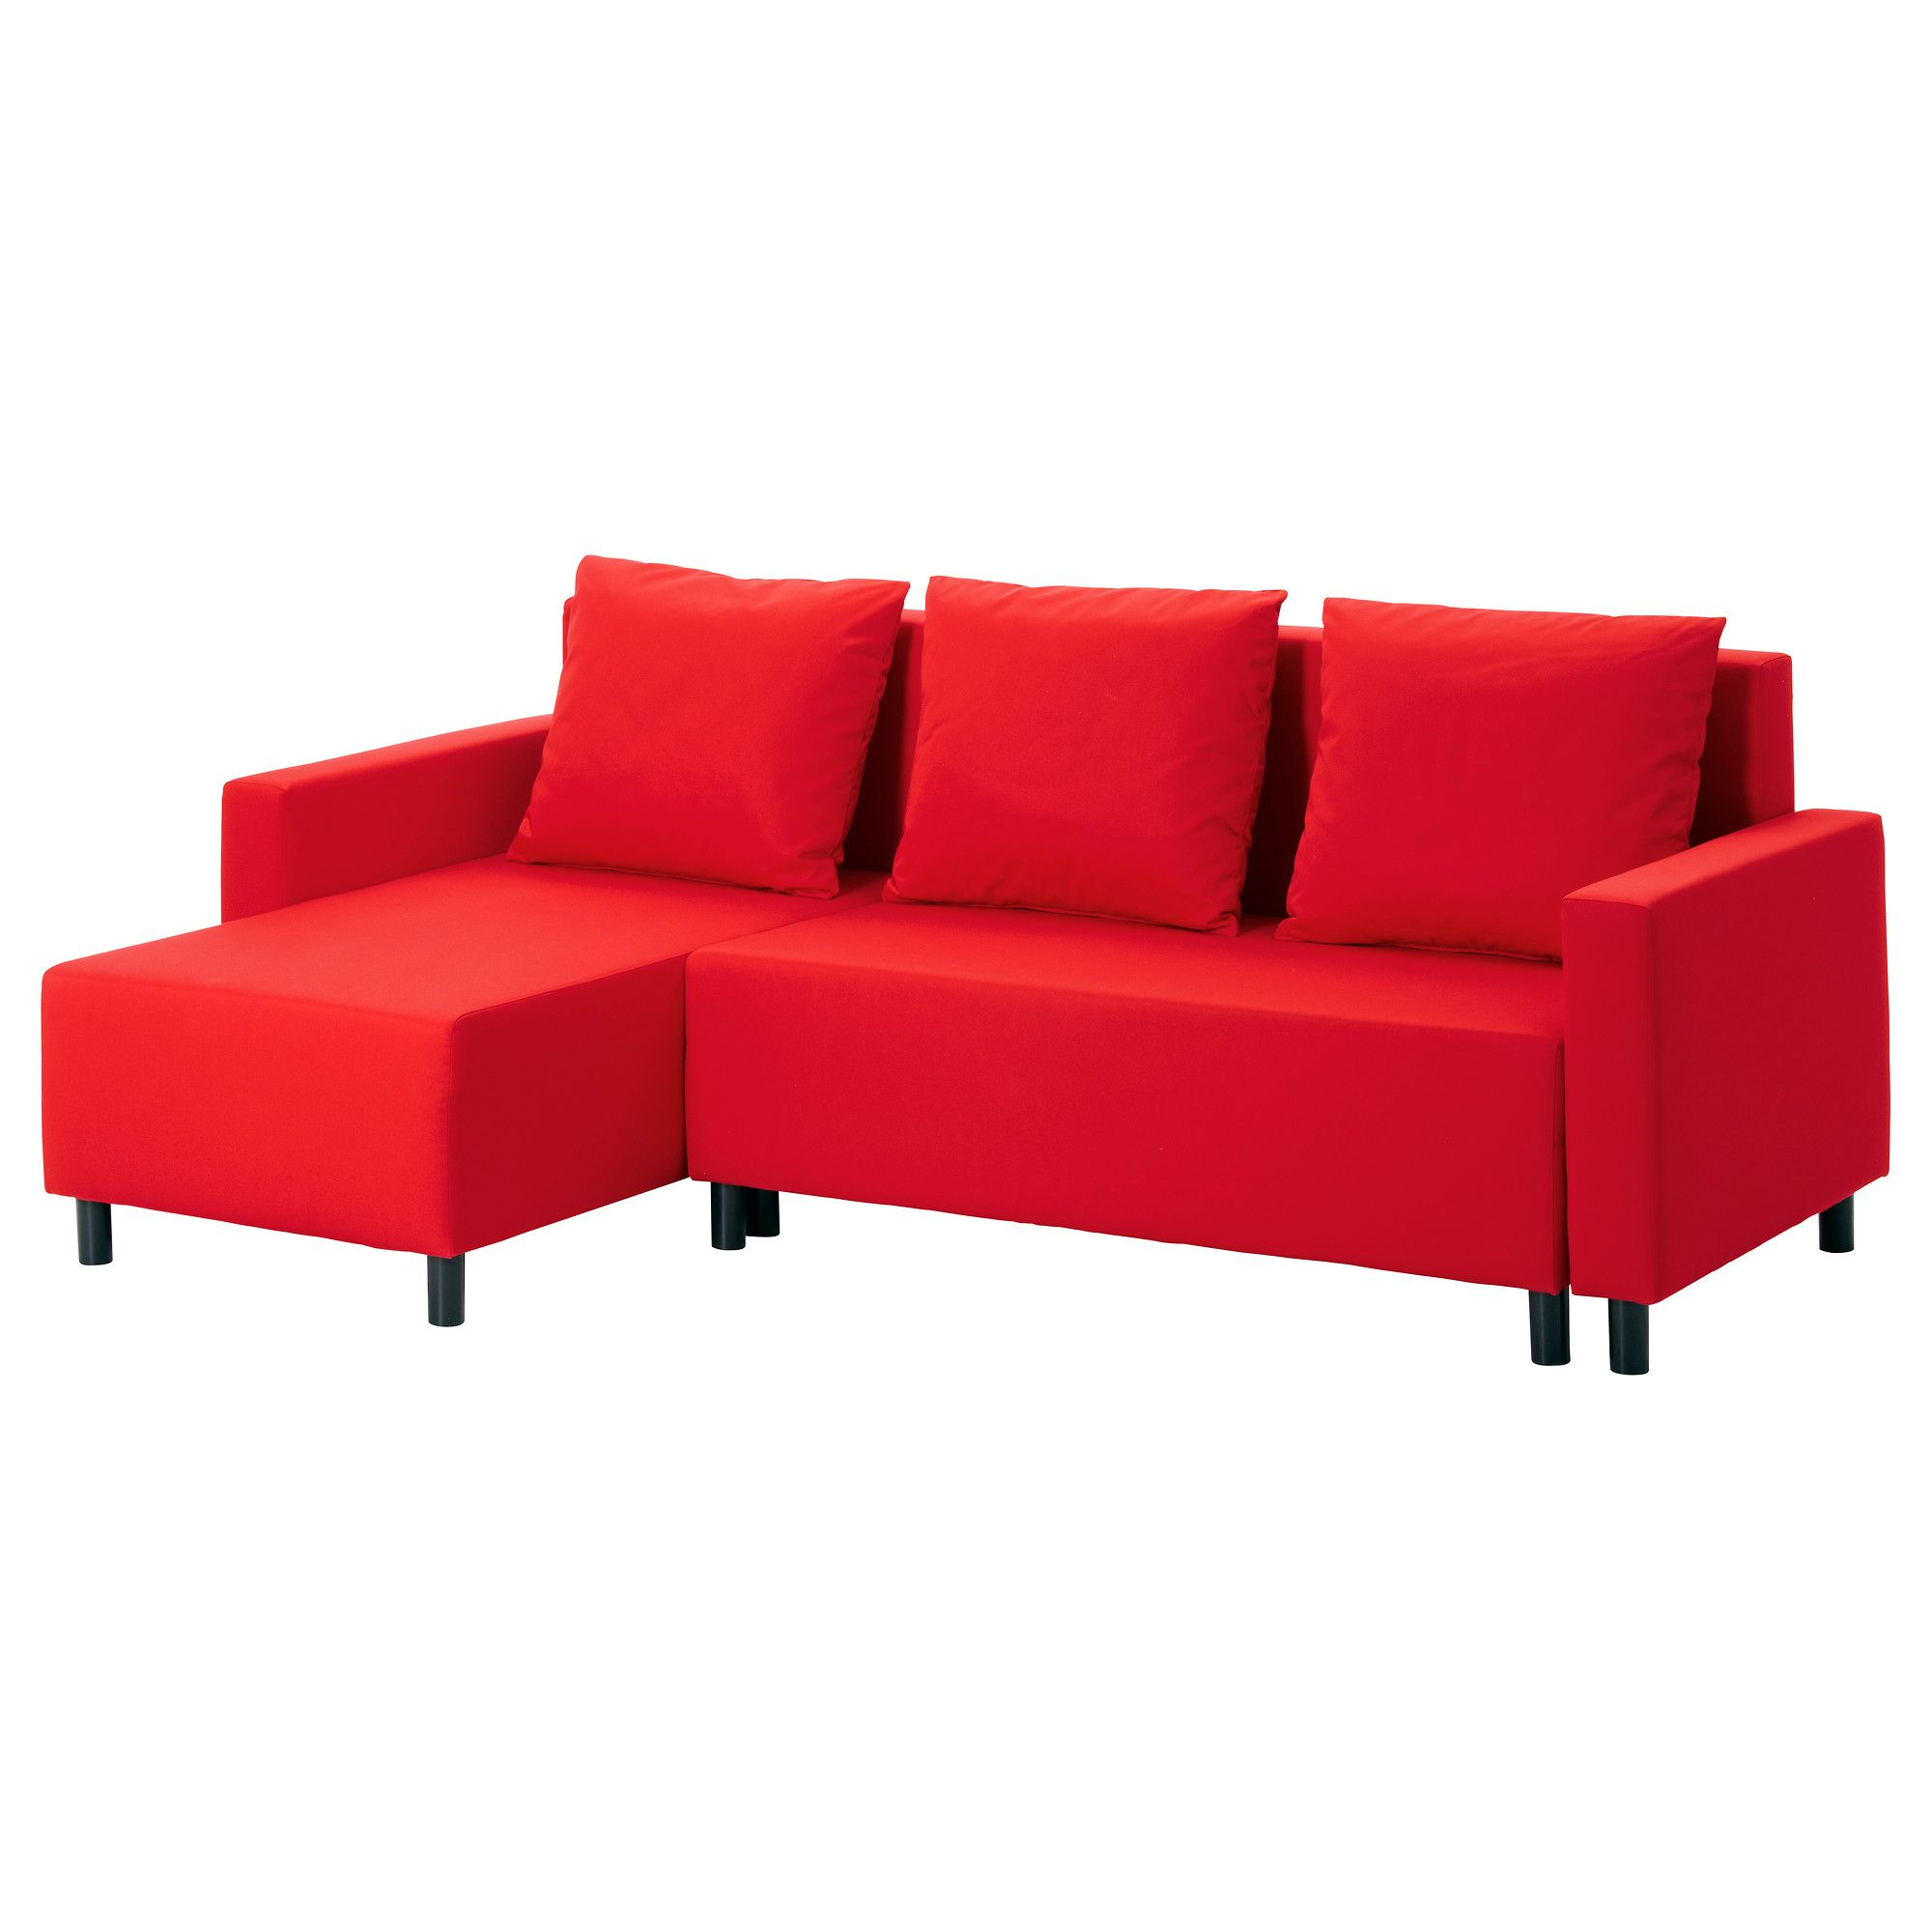 Ikea Sofas Chaise Longue Lugnvik Sofa Bed With Chaise Lounge - Granån Red - Ikea